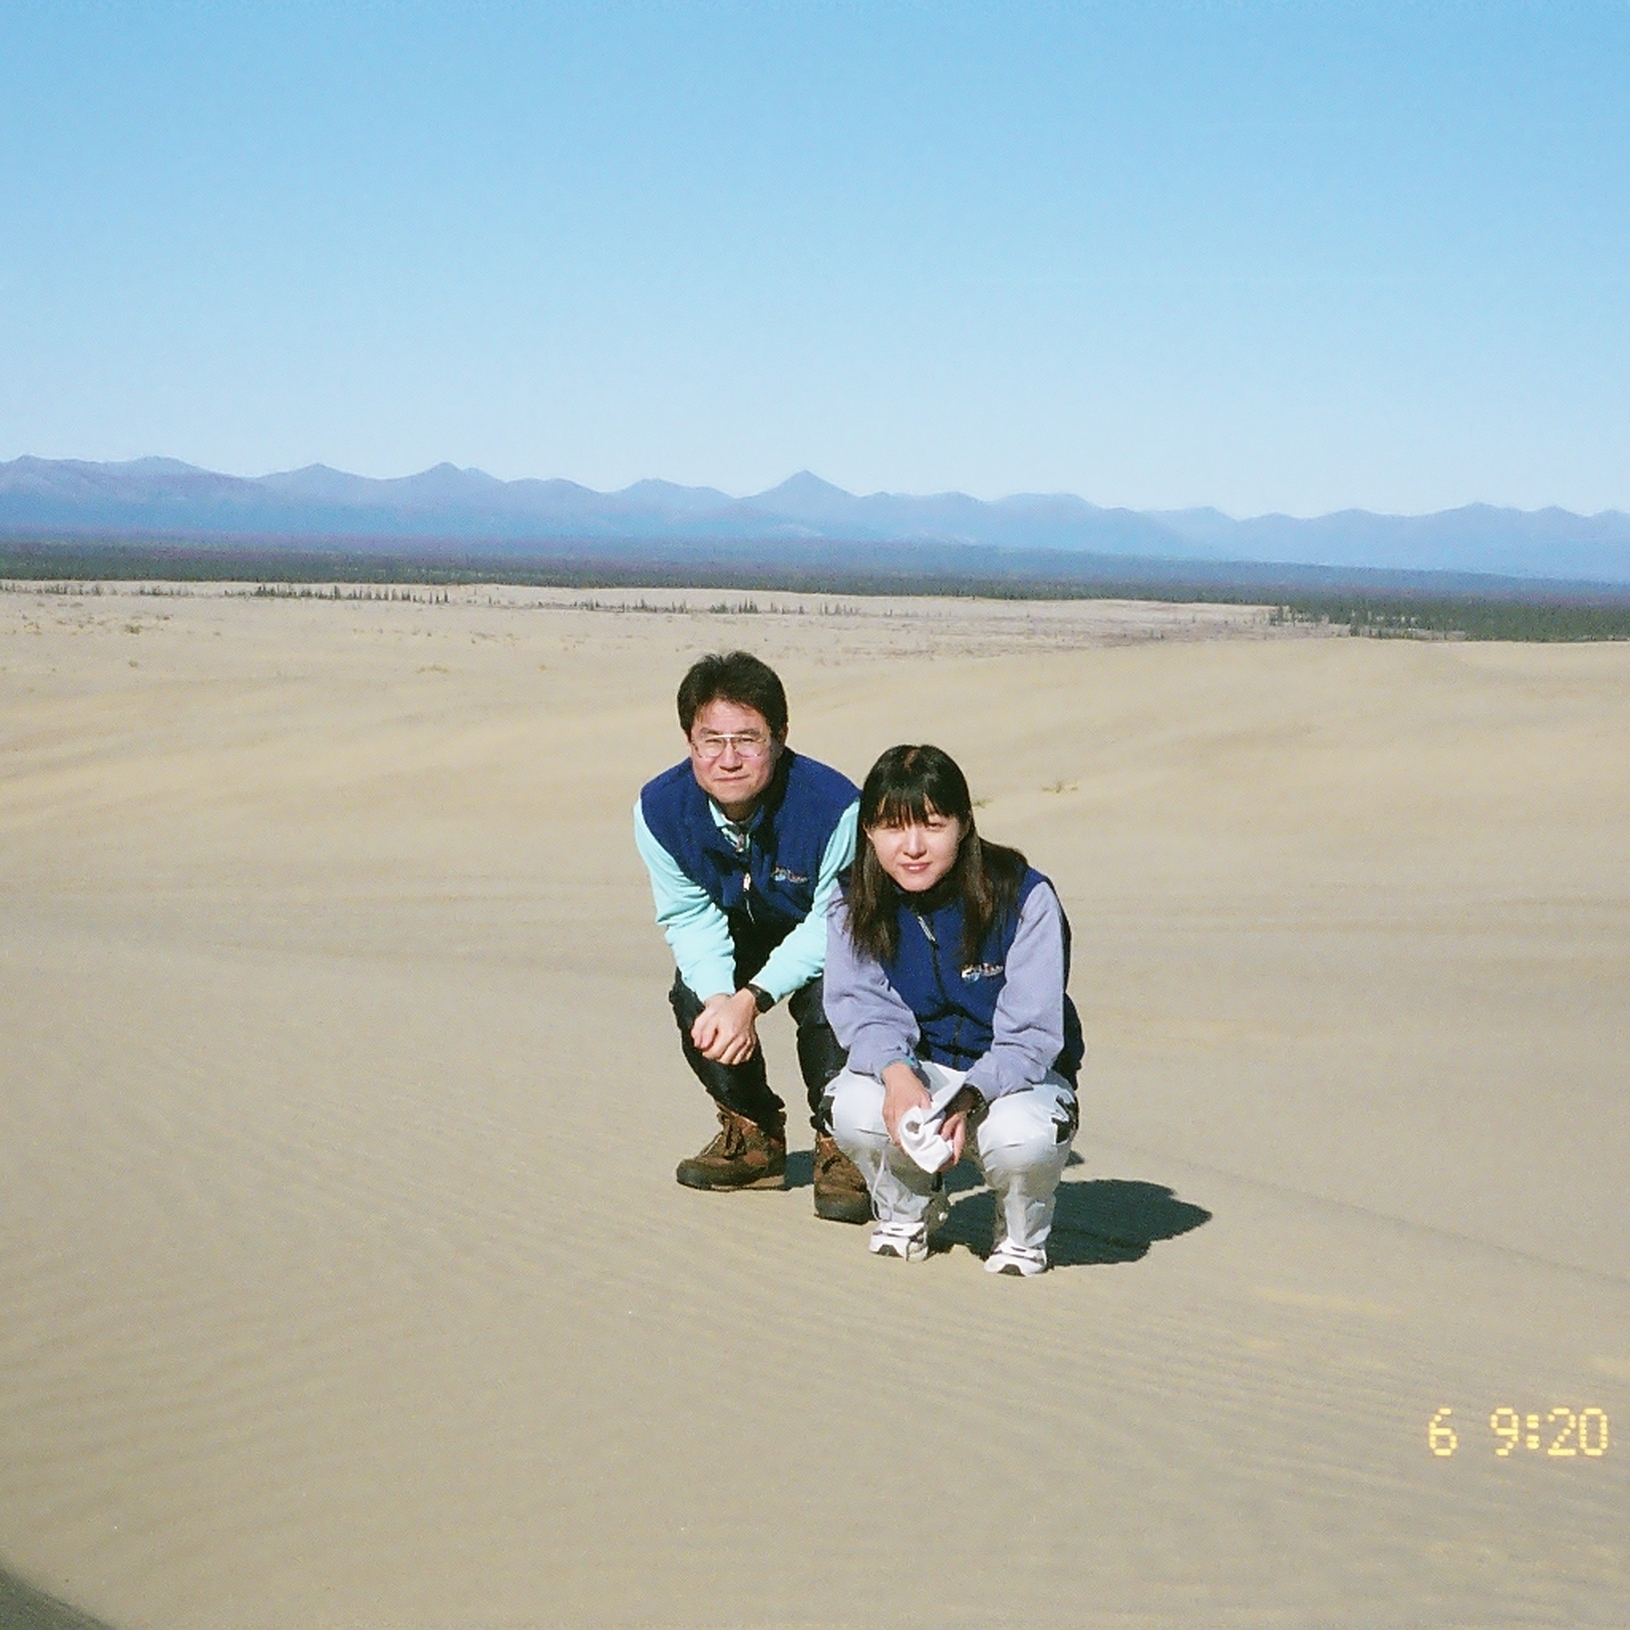 KOBUK VALLEY NP GREAT SAND DUNES